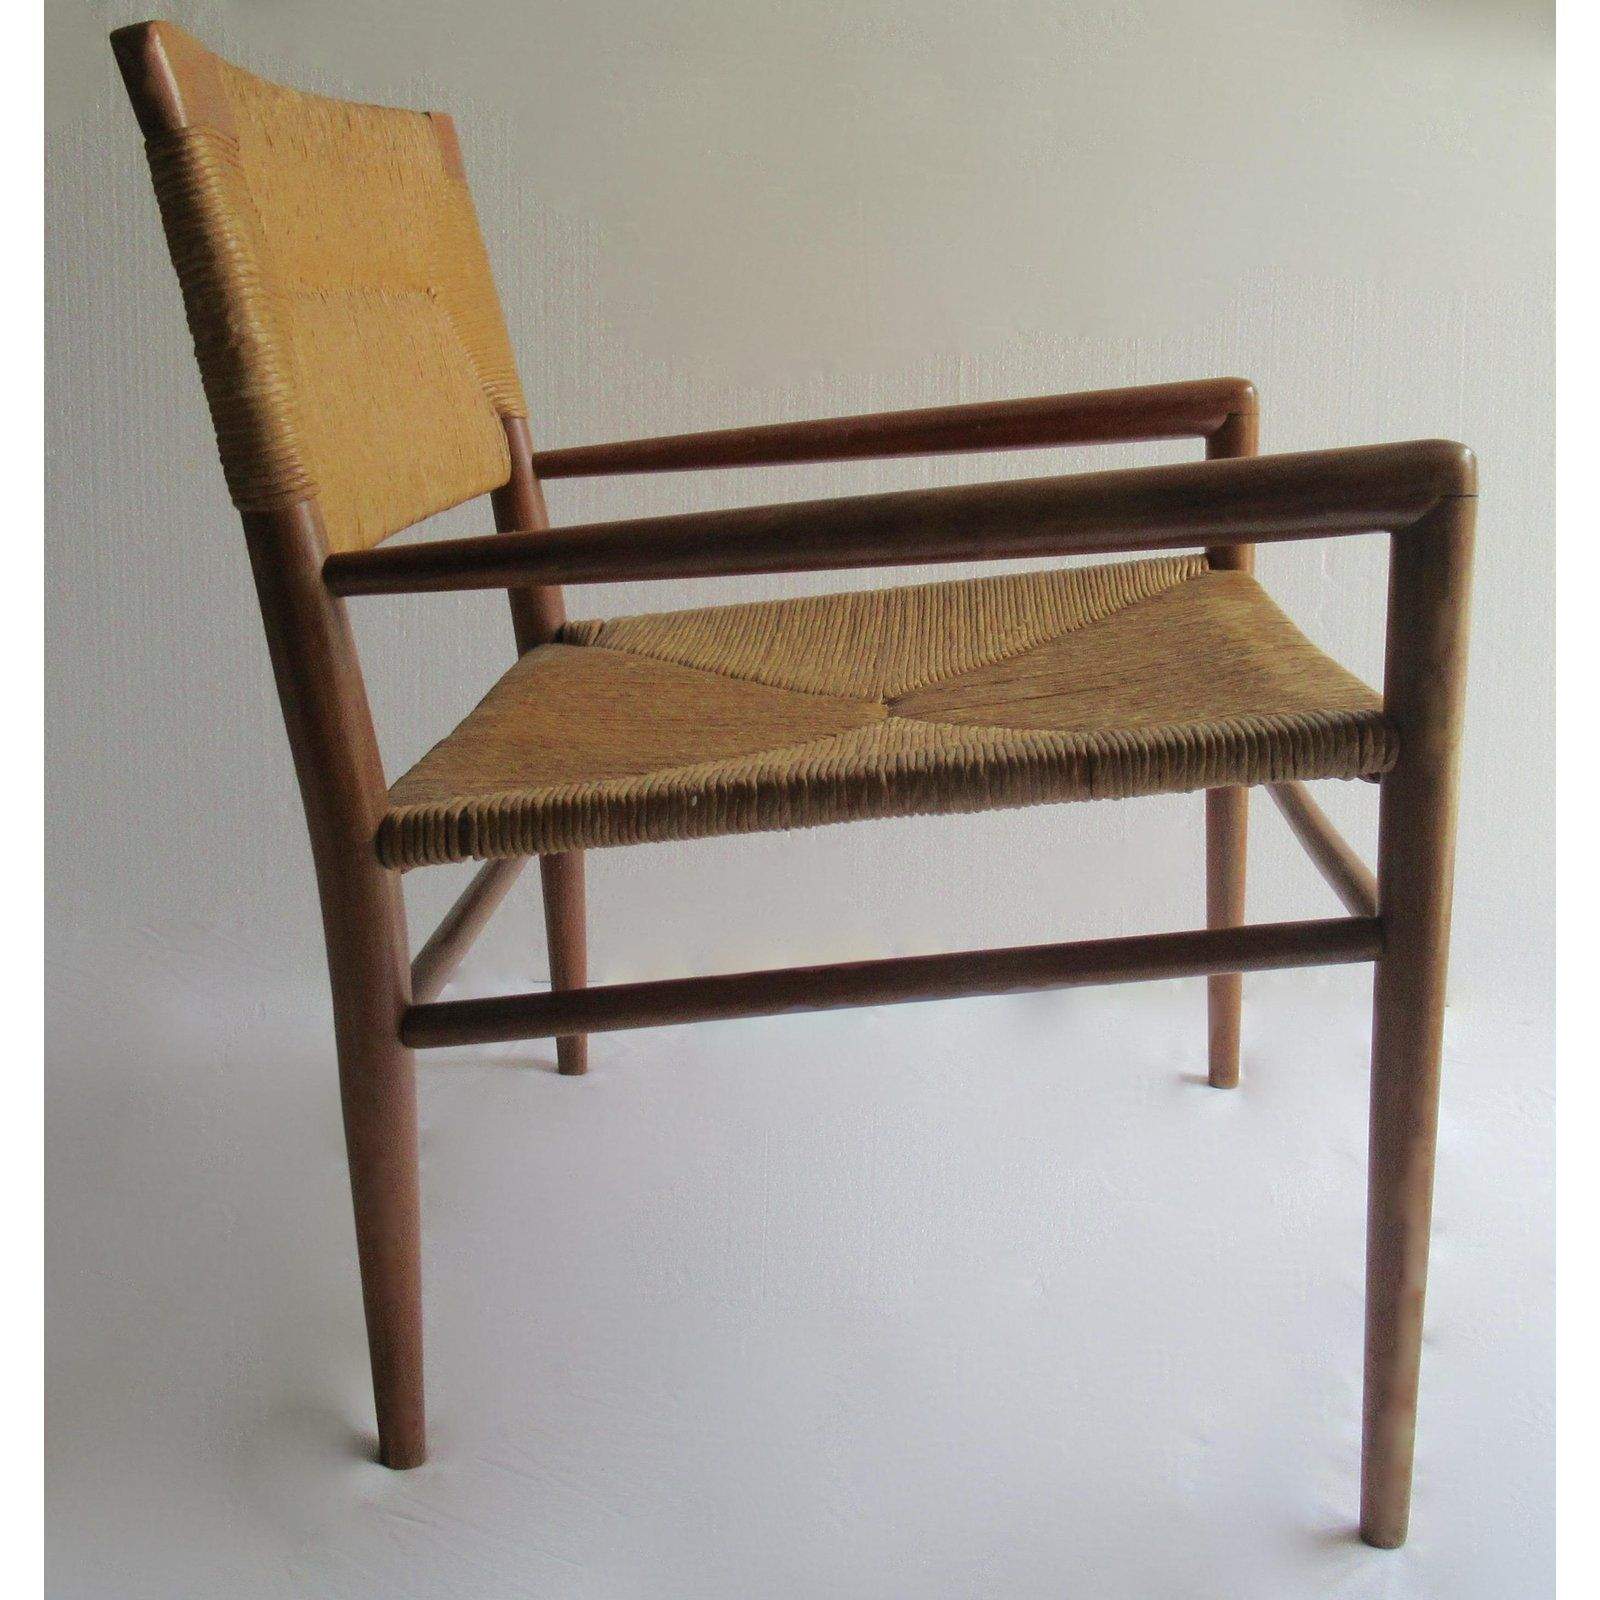 Mel smilow early mid century c 1956 mel smilow thielle walnut woven lounge chair for sale image 4 of 13